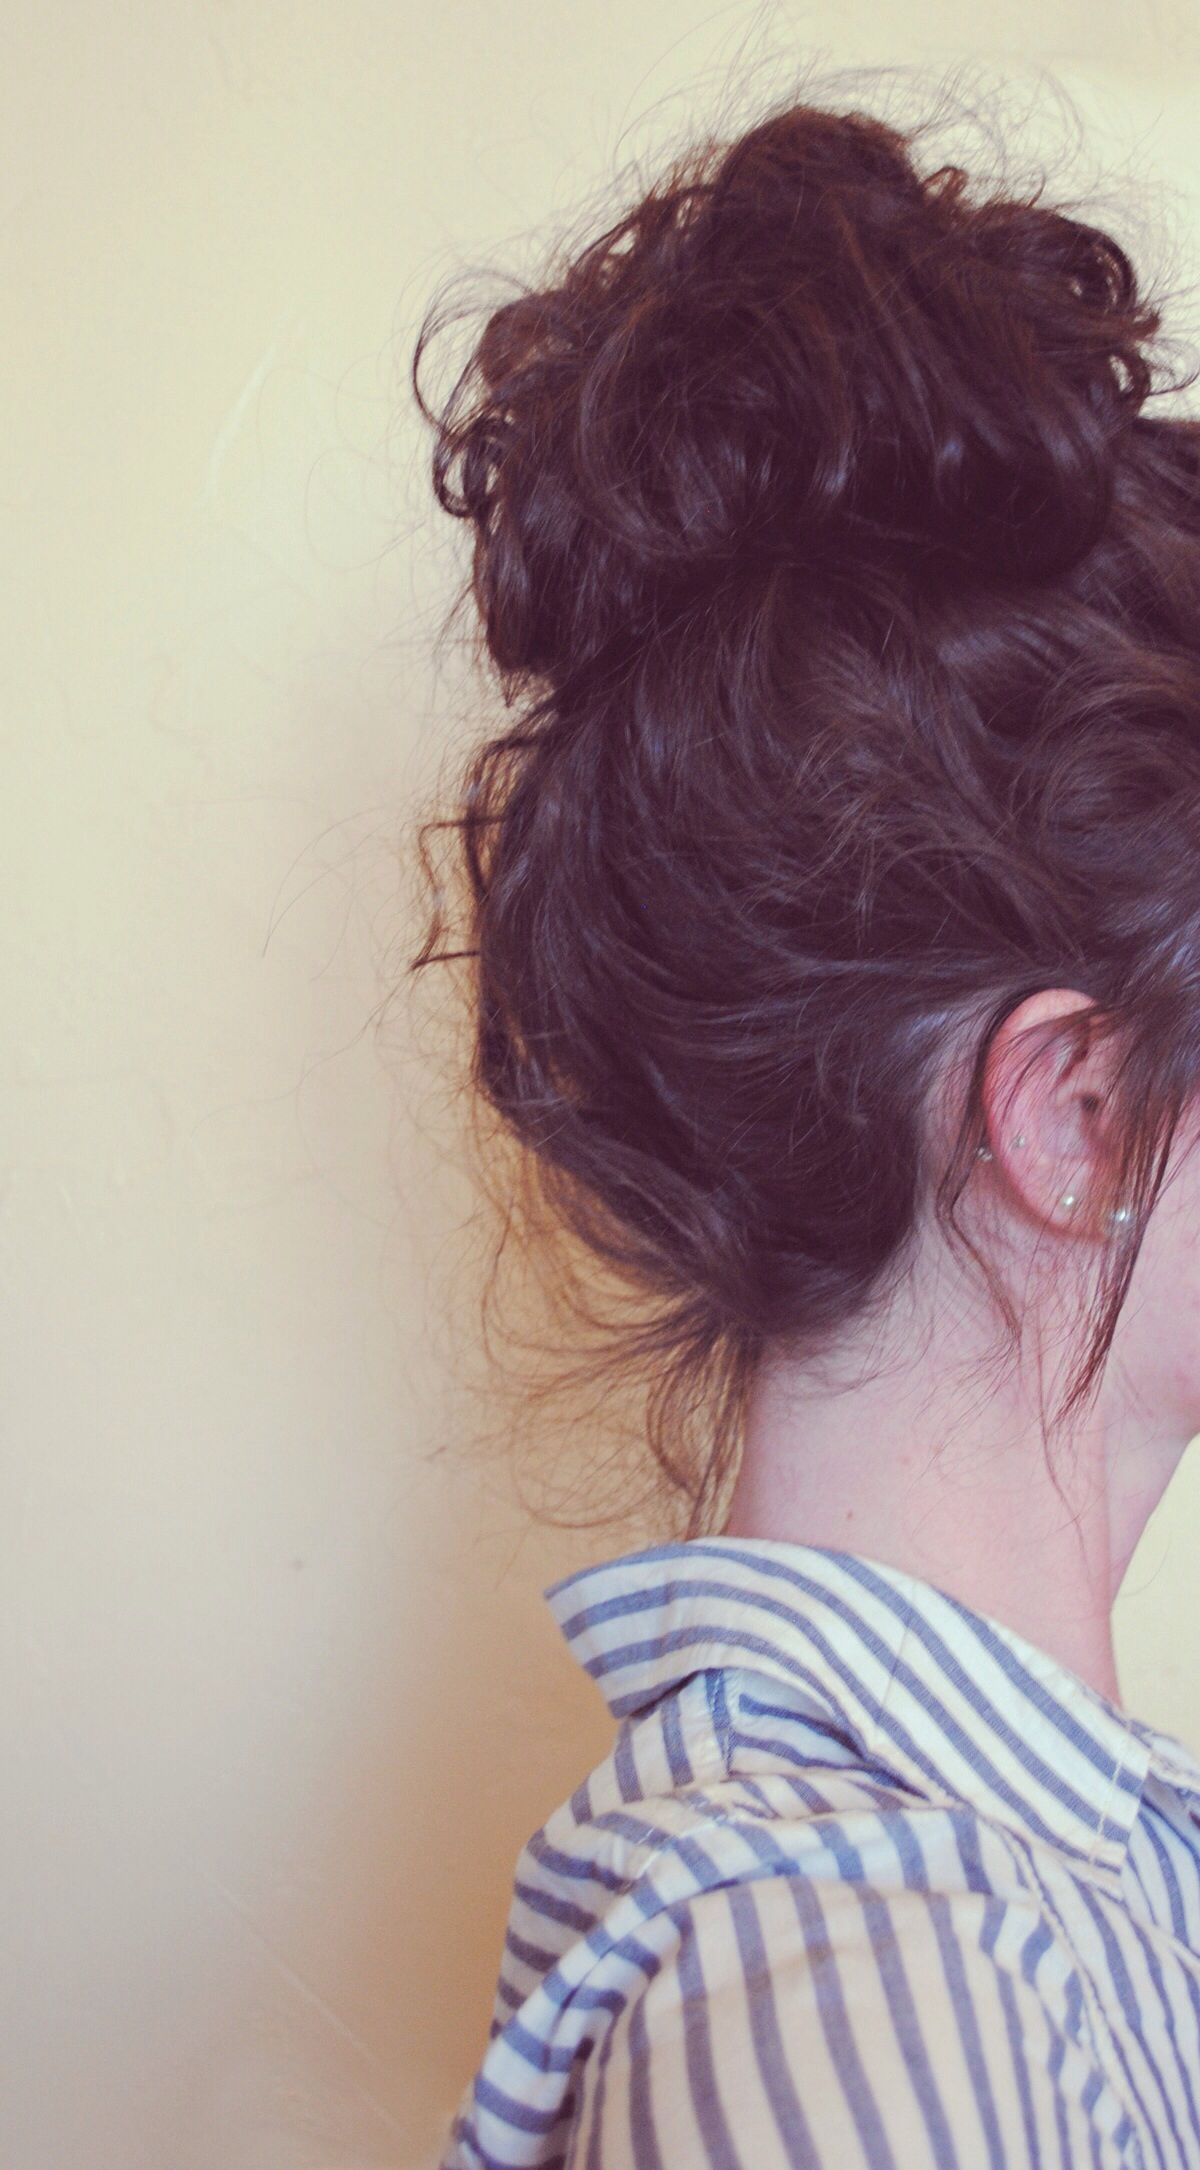 13 Problems Only Curly Haired Girls Will Understand Hair Styles Long Hair Styles Curly Hair Styles